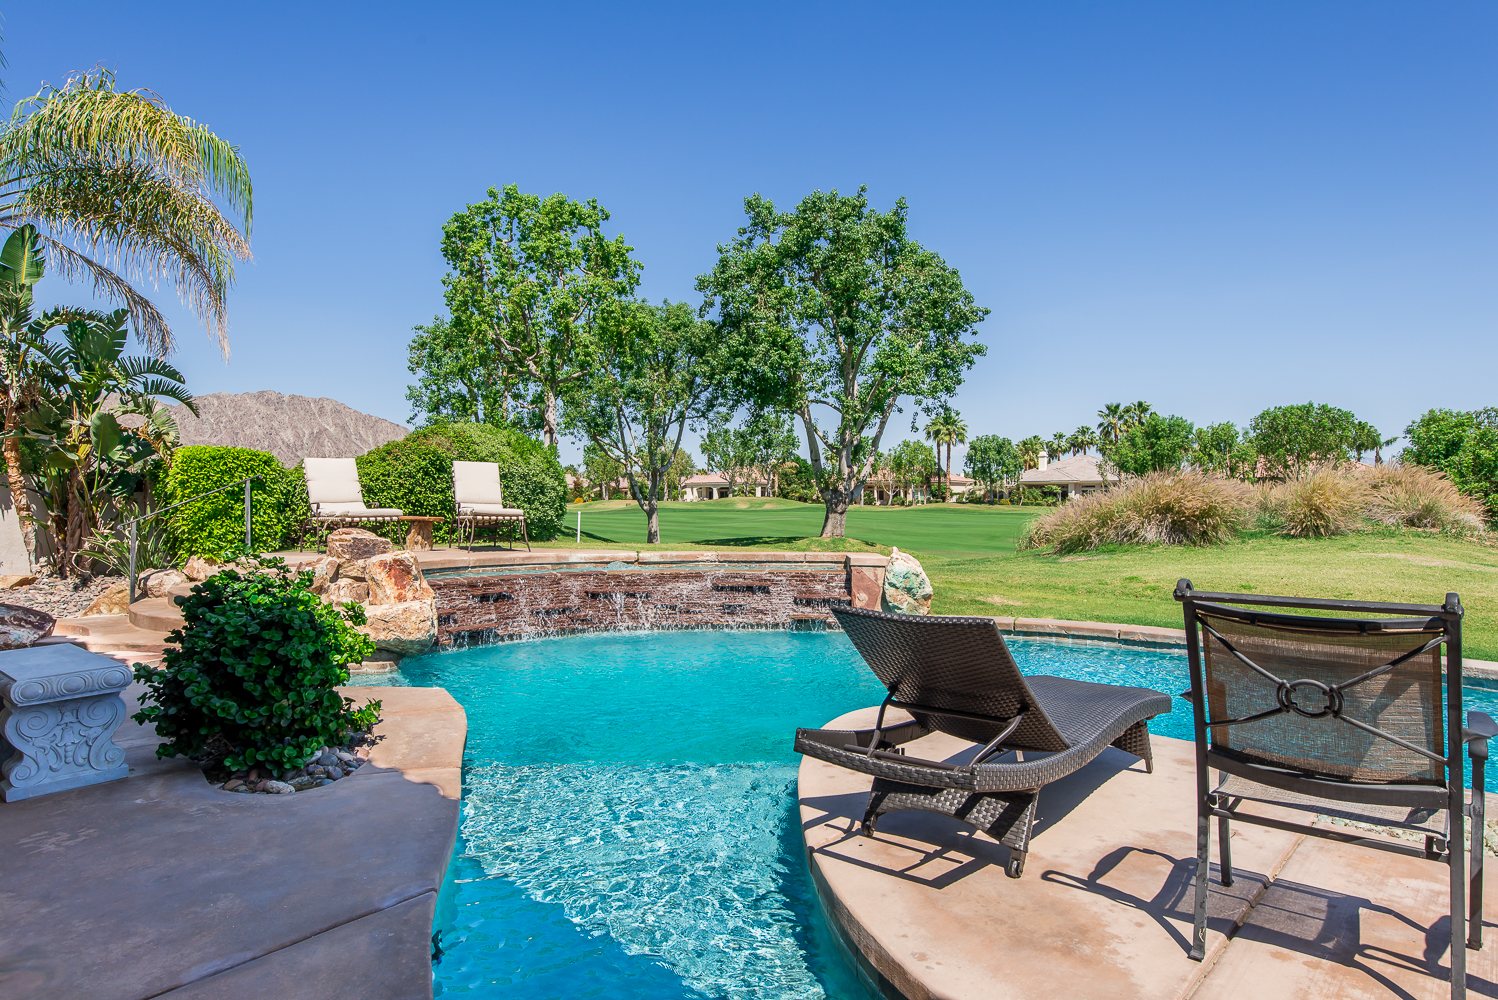 pga106 golf course luxury estate five star vacation rentals